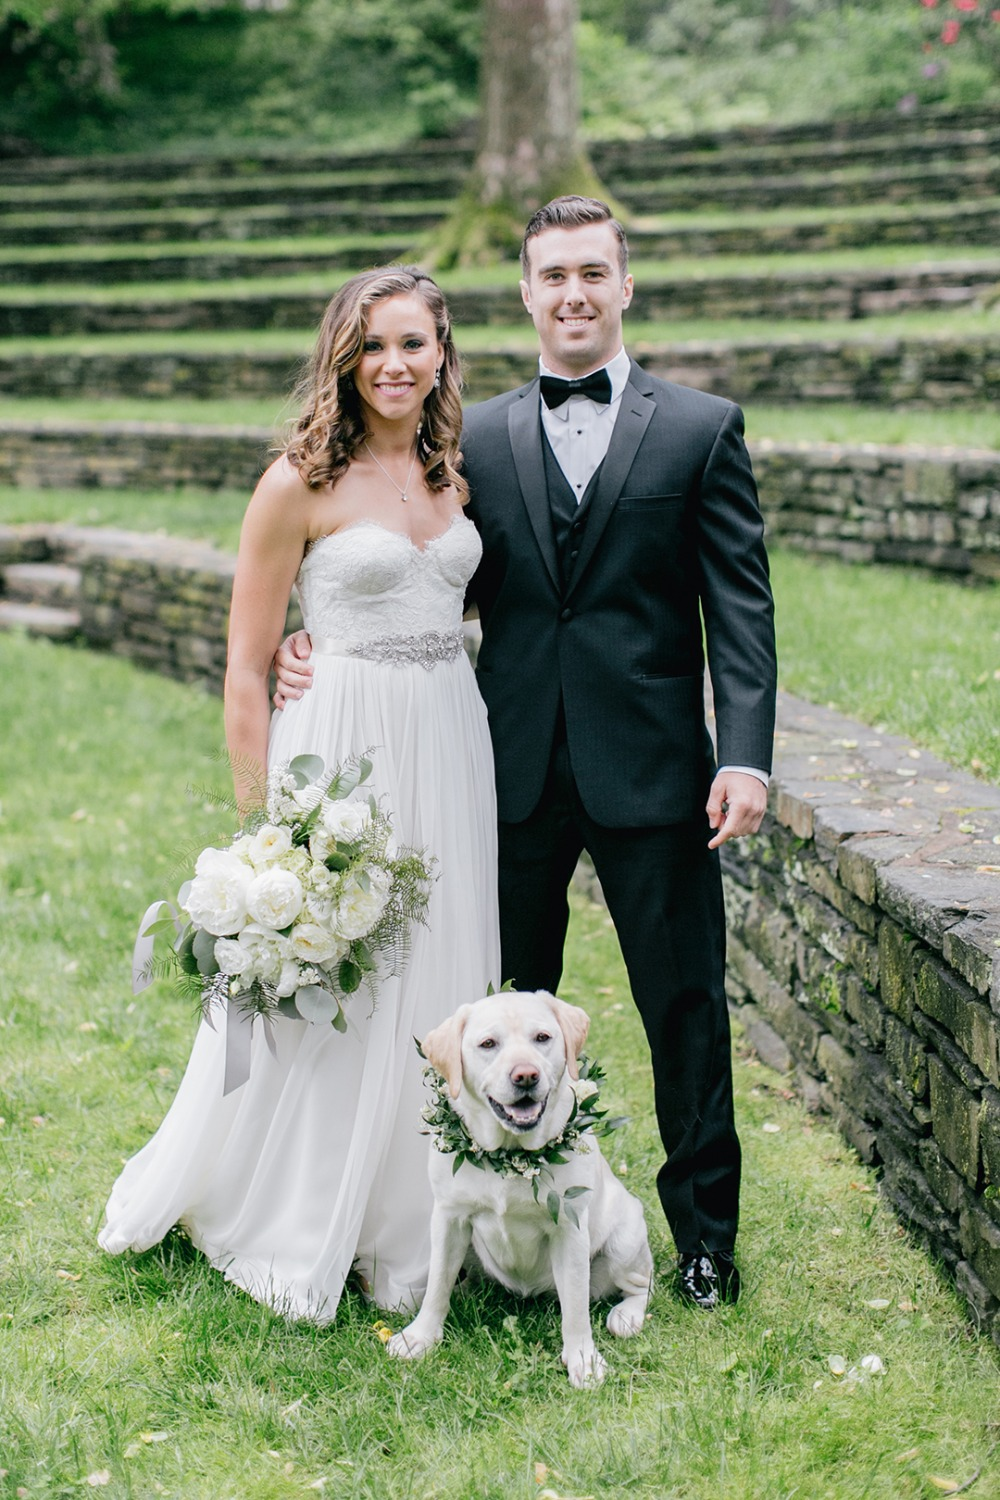 Wedding pup photo idea